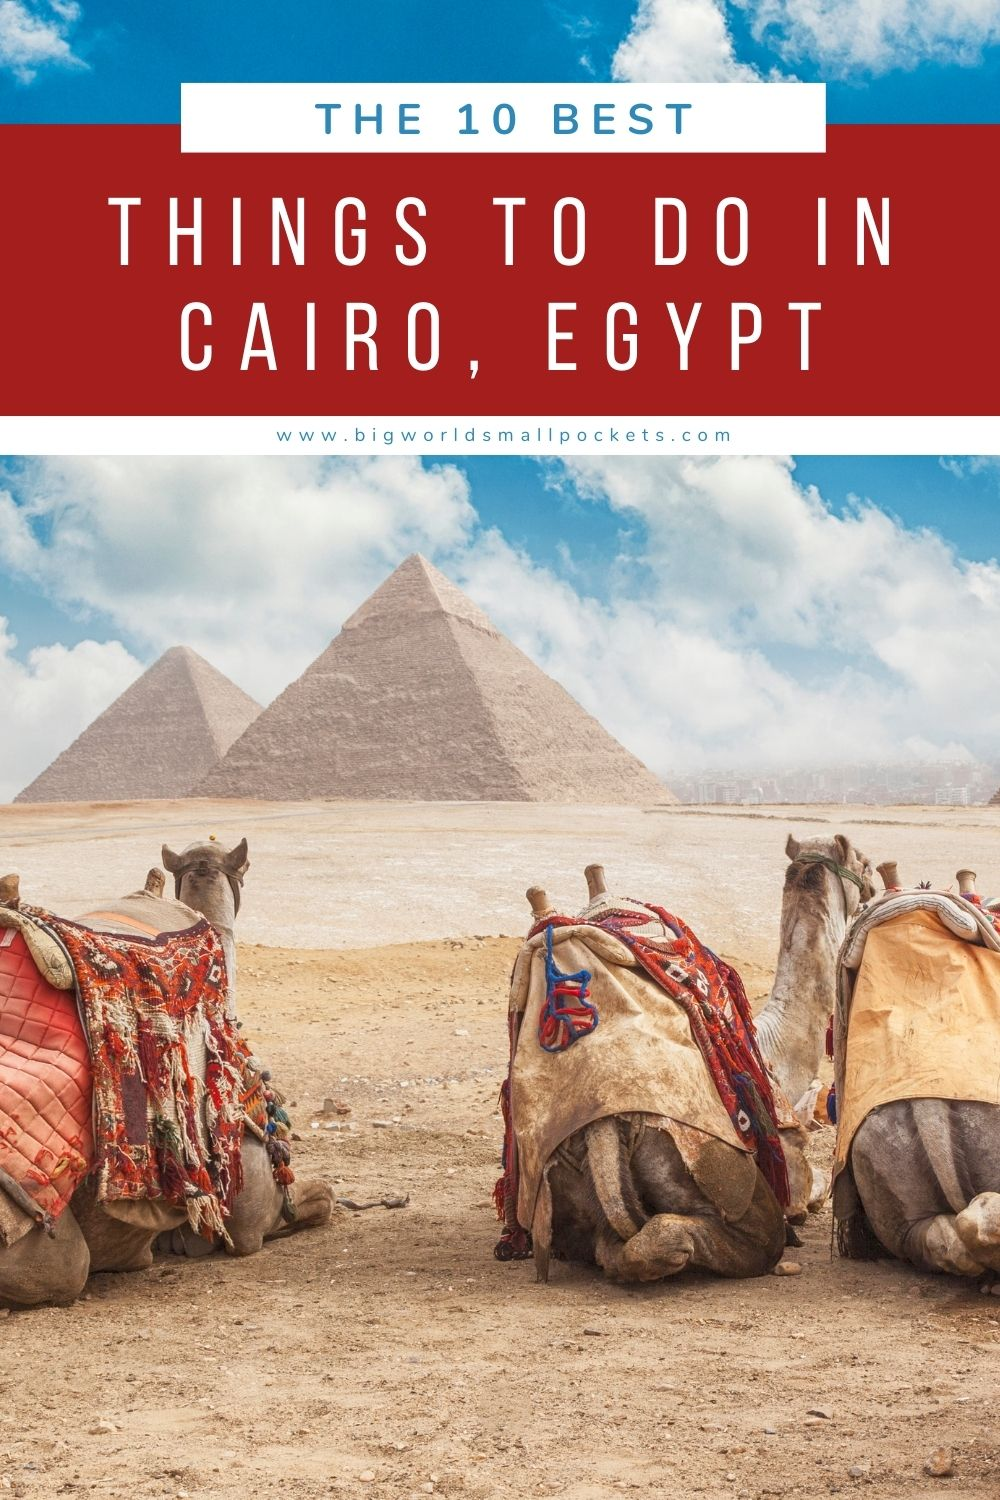 10 Best Things to Do in Cairo, Egypt